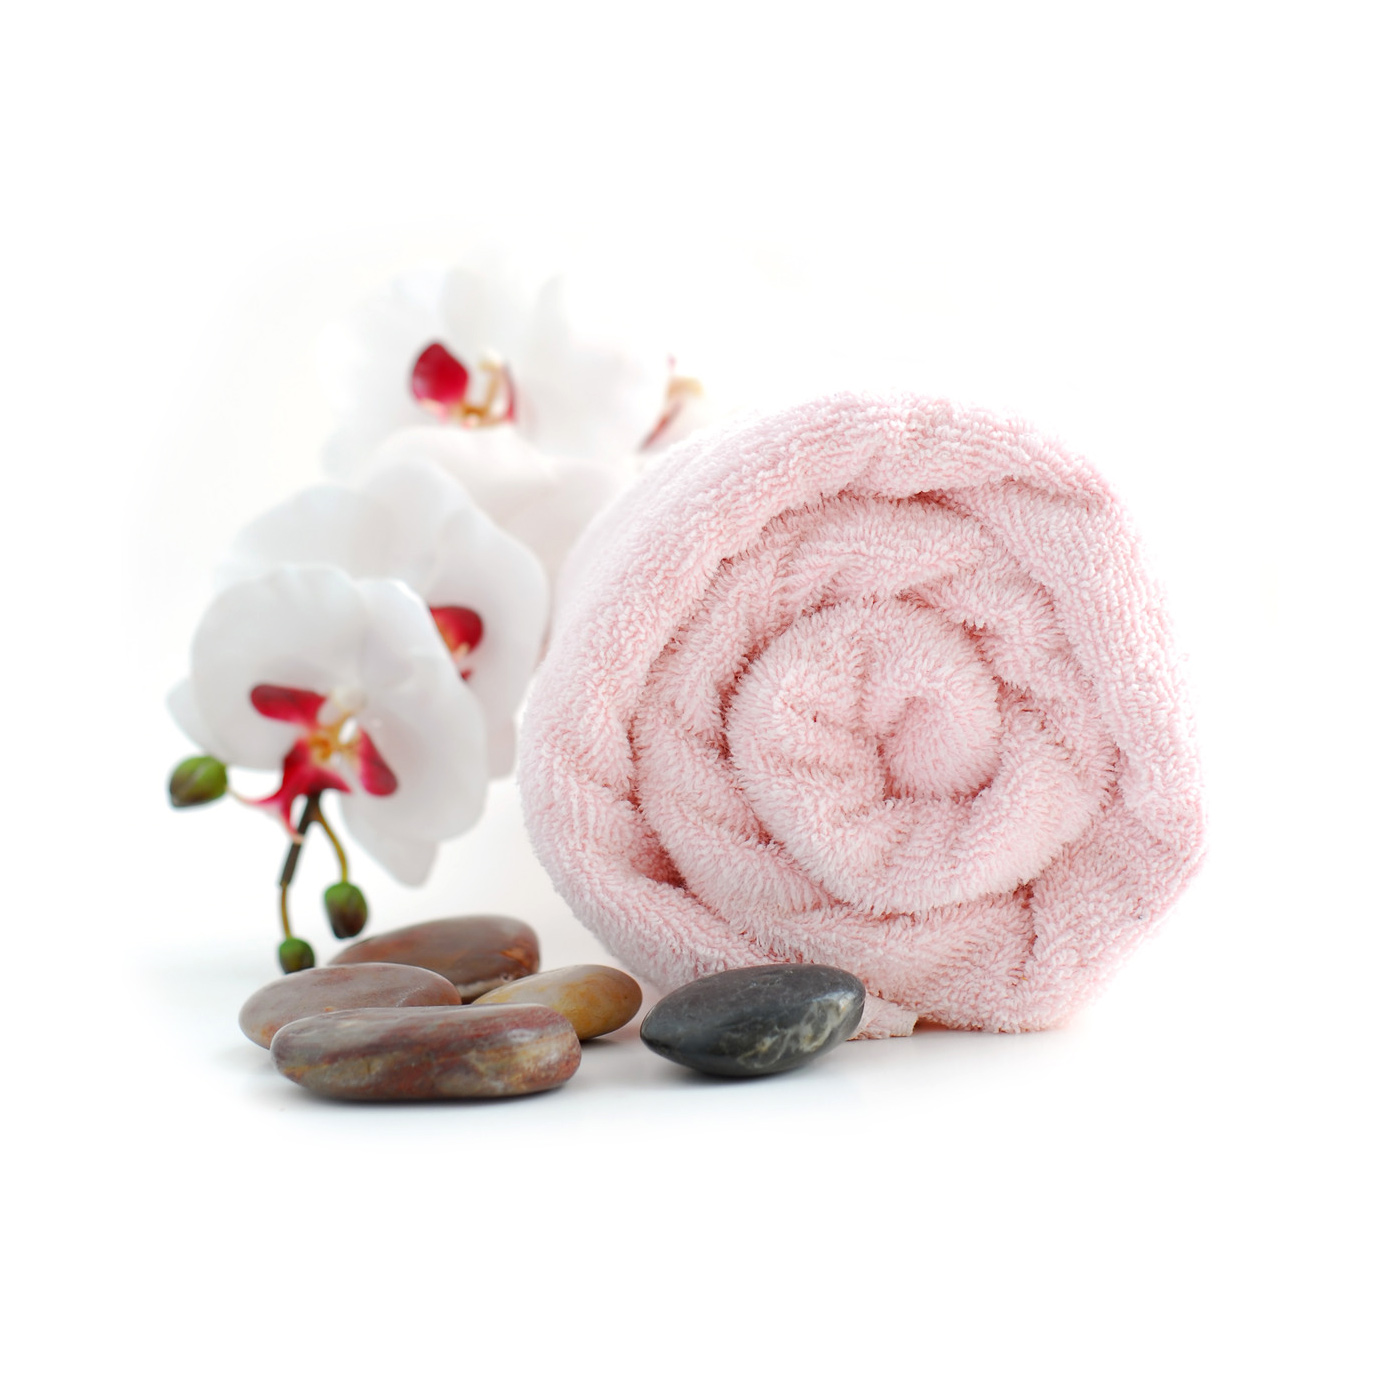 Towel of Erotic Massage Vienna